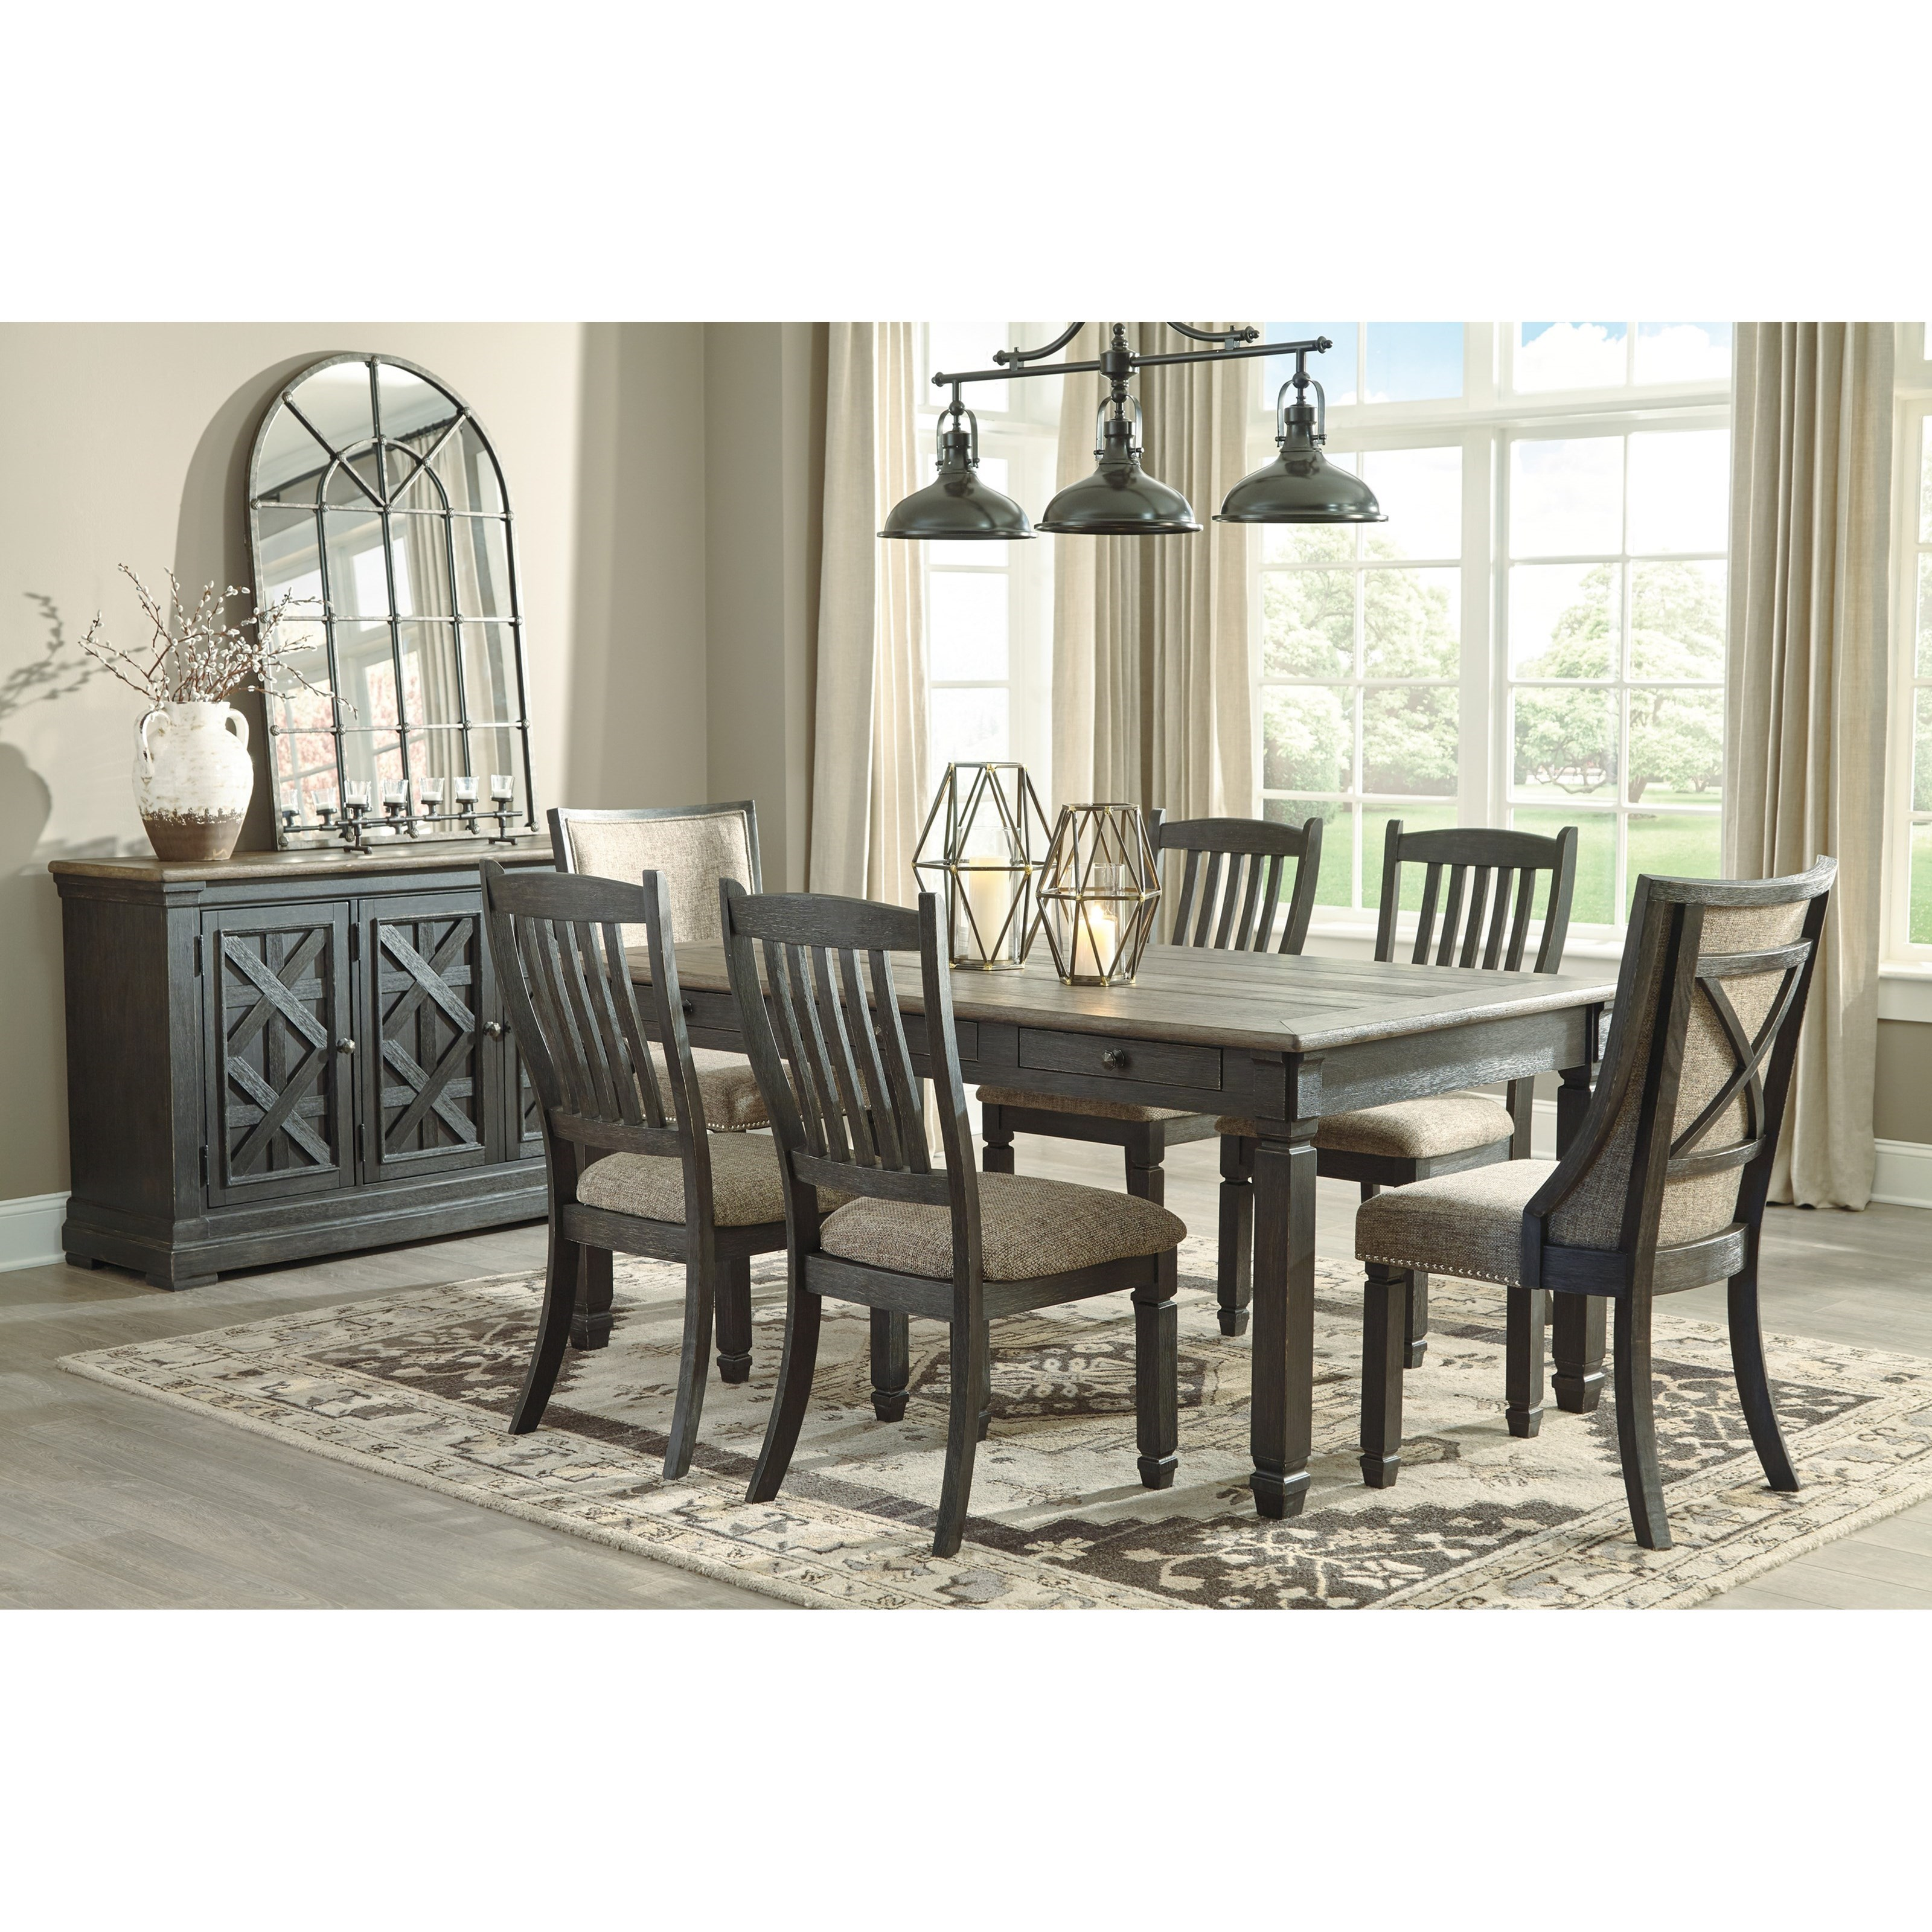 signature design by ashley tyler creek casual dining room. Black Bedroom Furniture Sets. Home Design Ideas